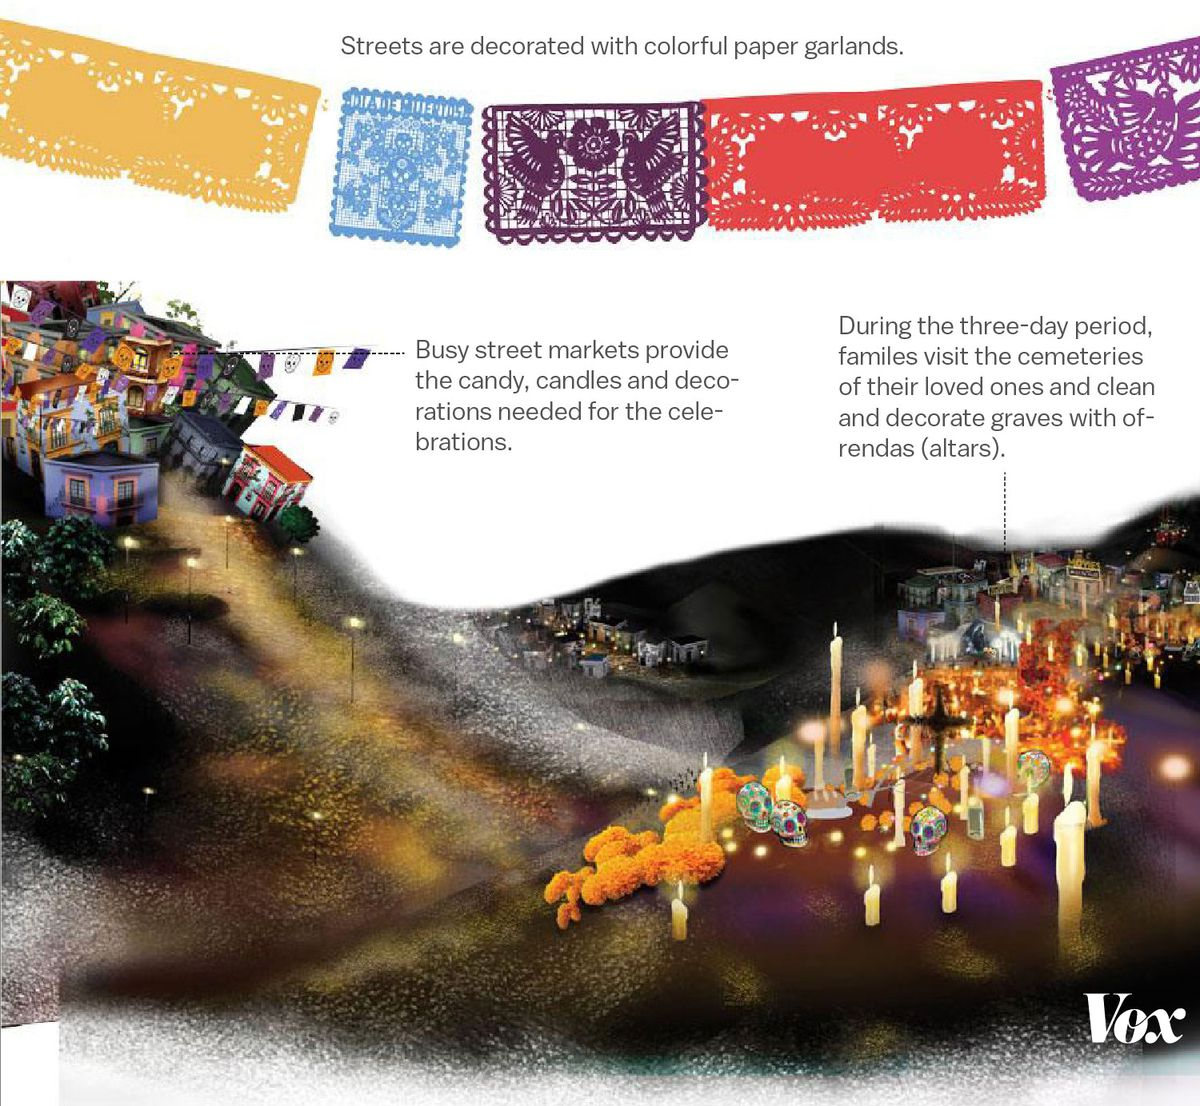 Illustration of paper garlands and the landscape of a cemetery during the Day of the Dead celebrations.